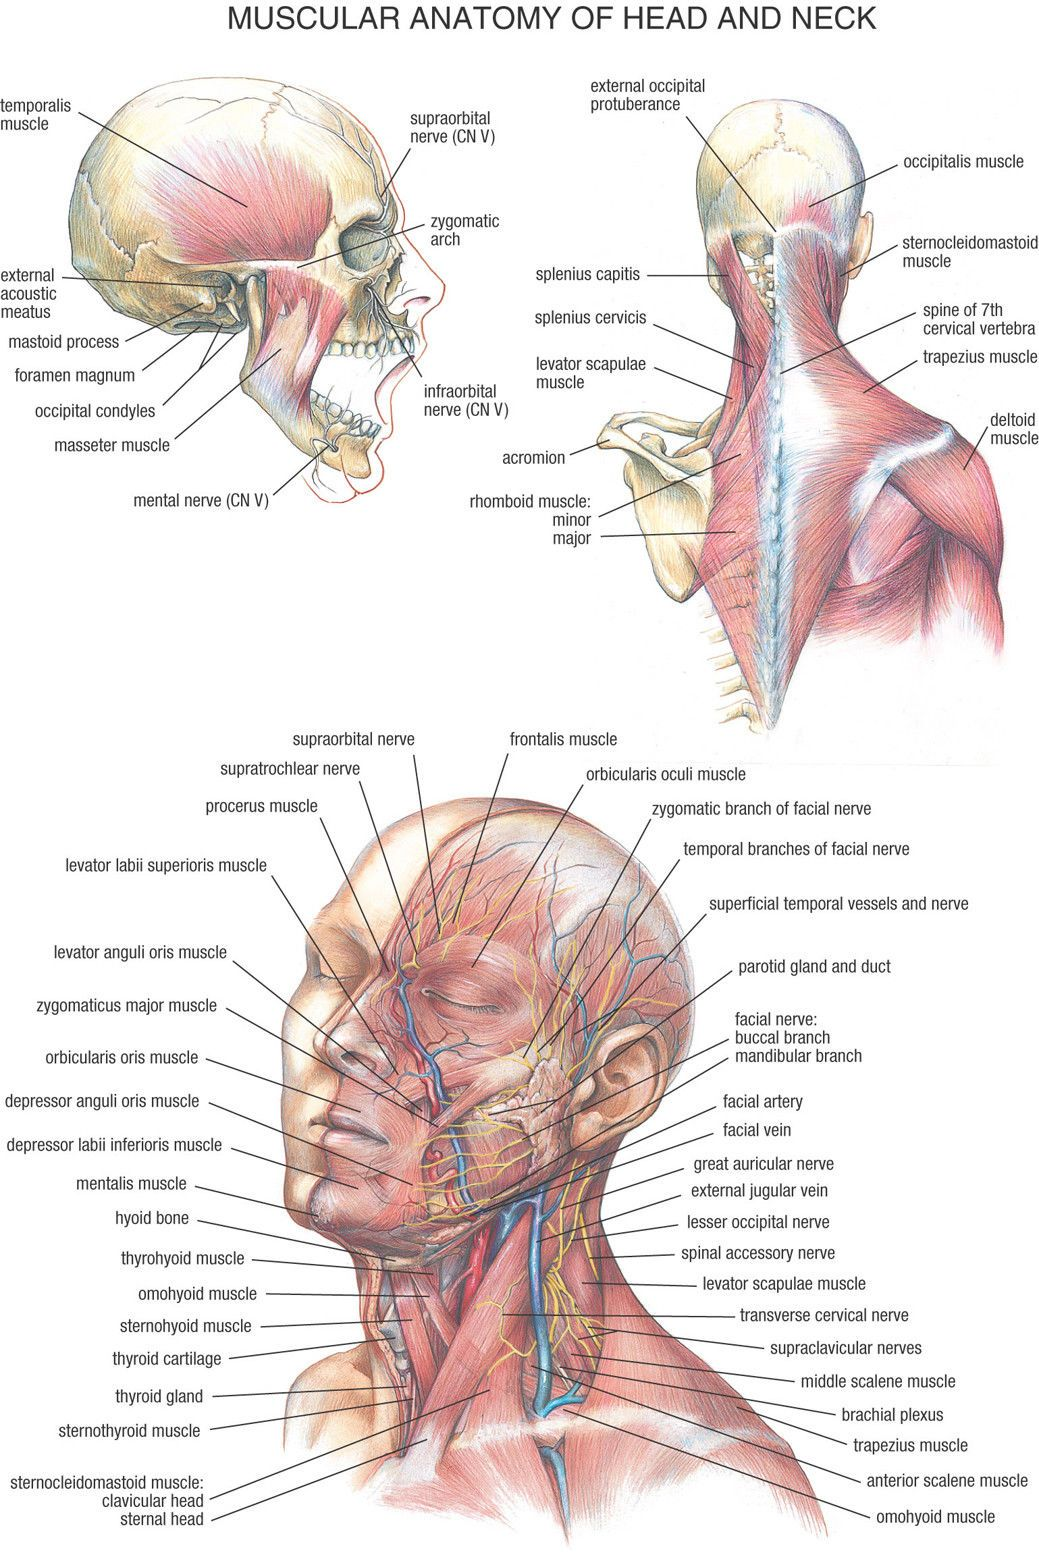 medium resolution of  4 99 human muscular anatomy of head and neck poster chart body midcal education ebay collectibles